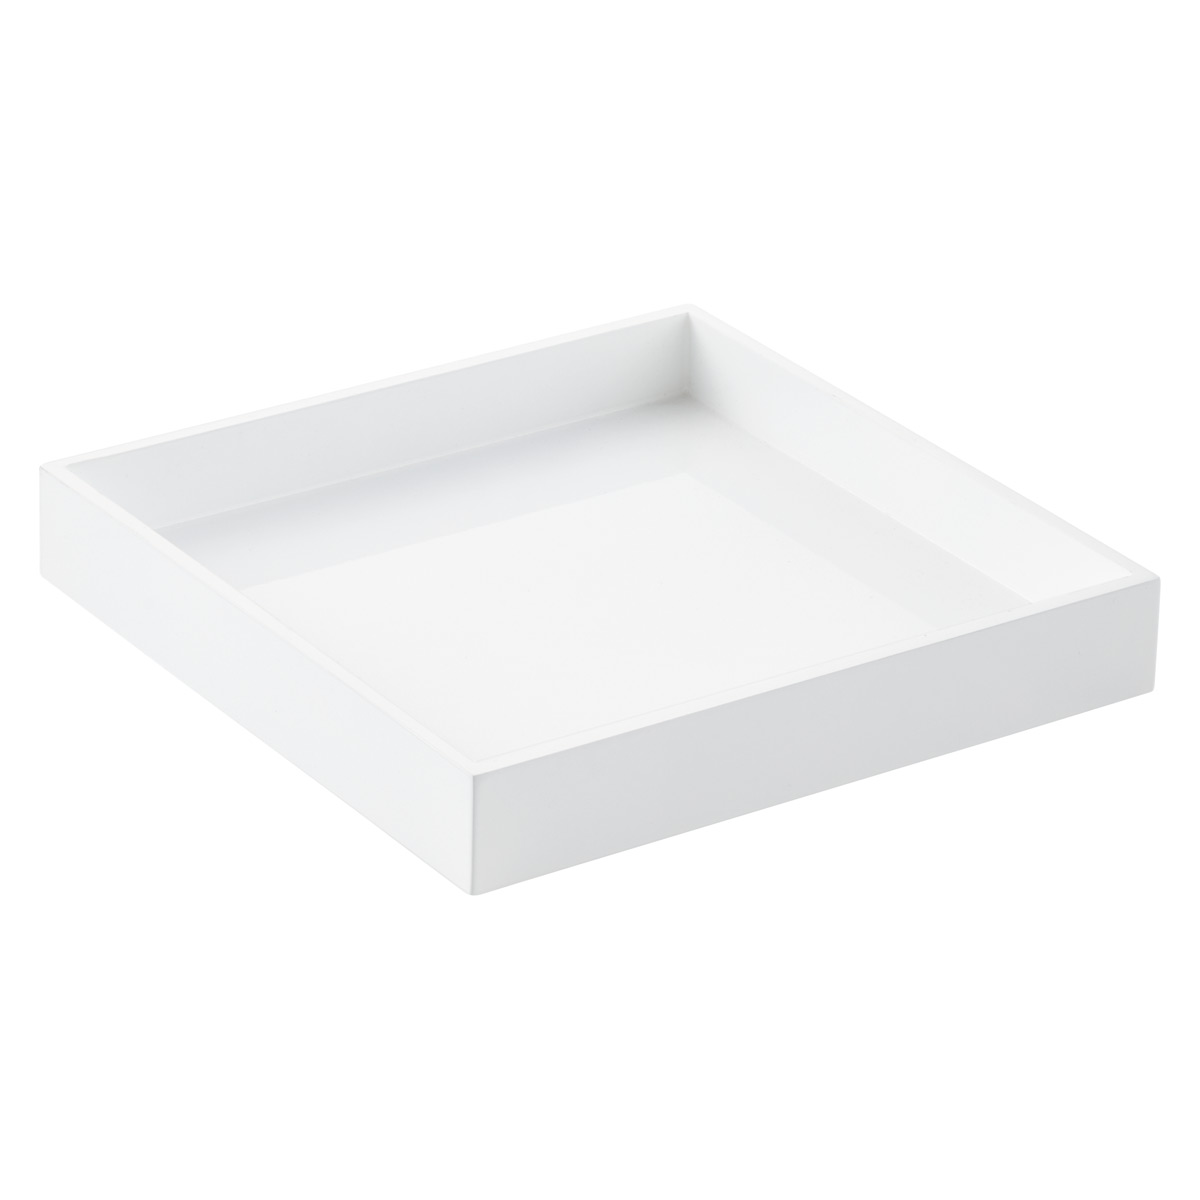 White Square Lacquered Serving Tray